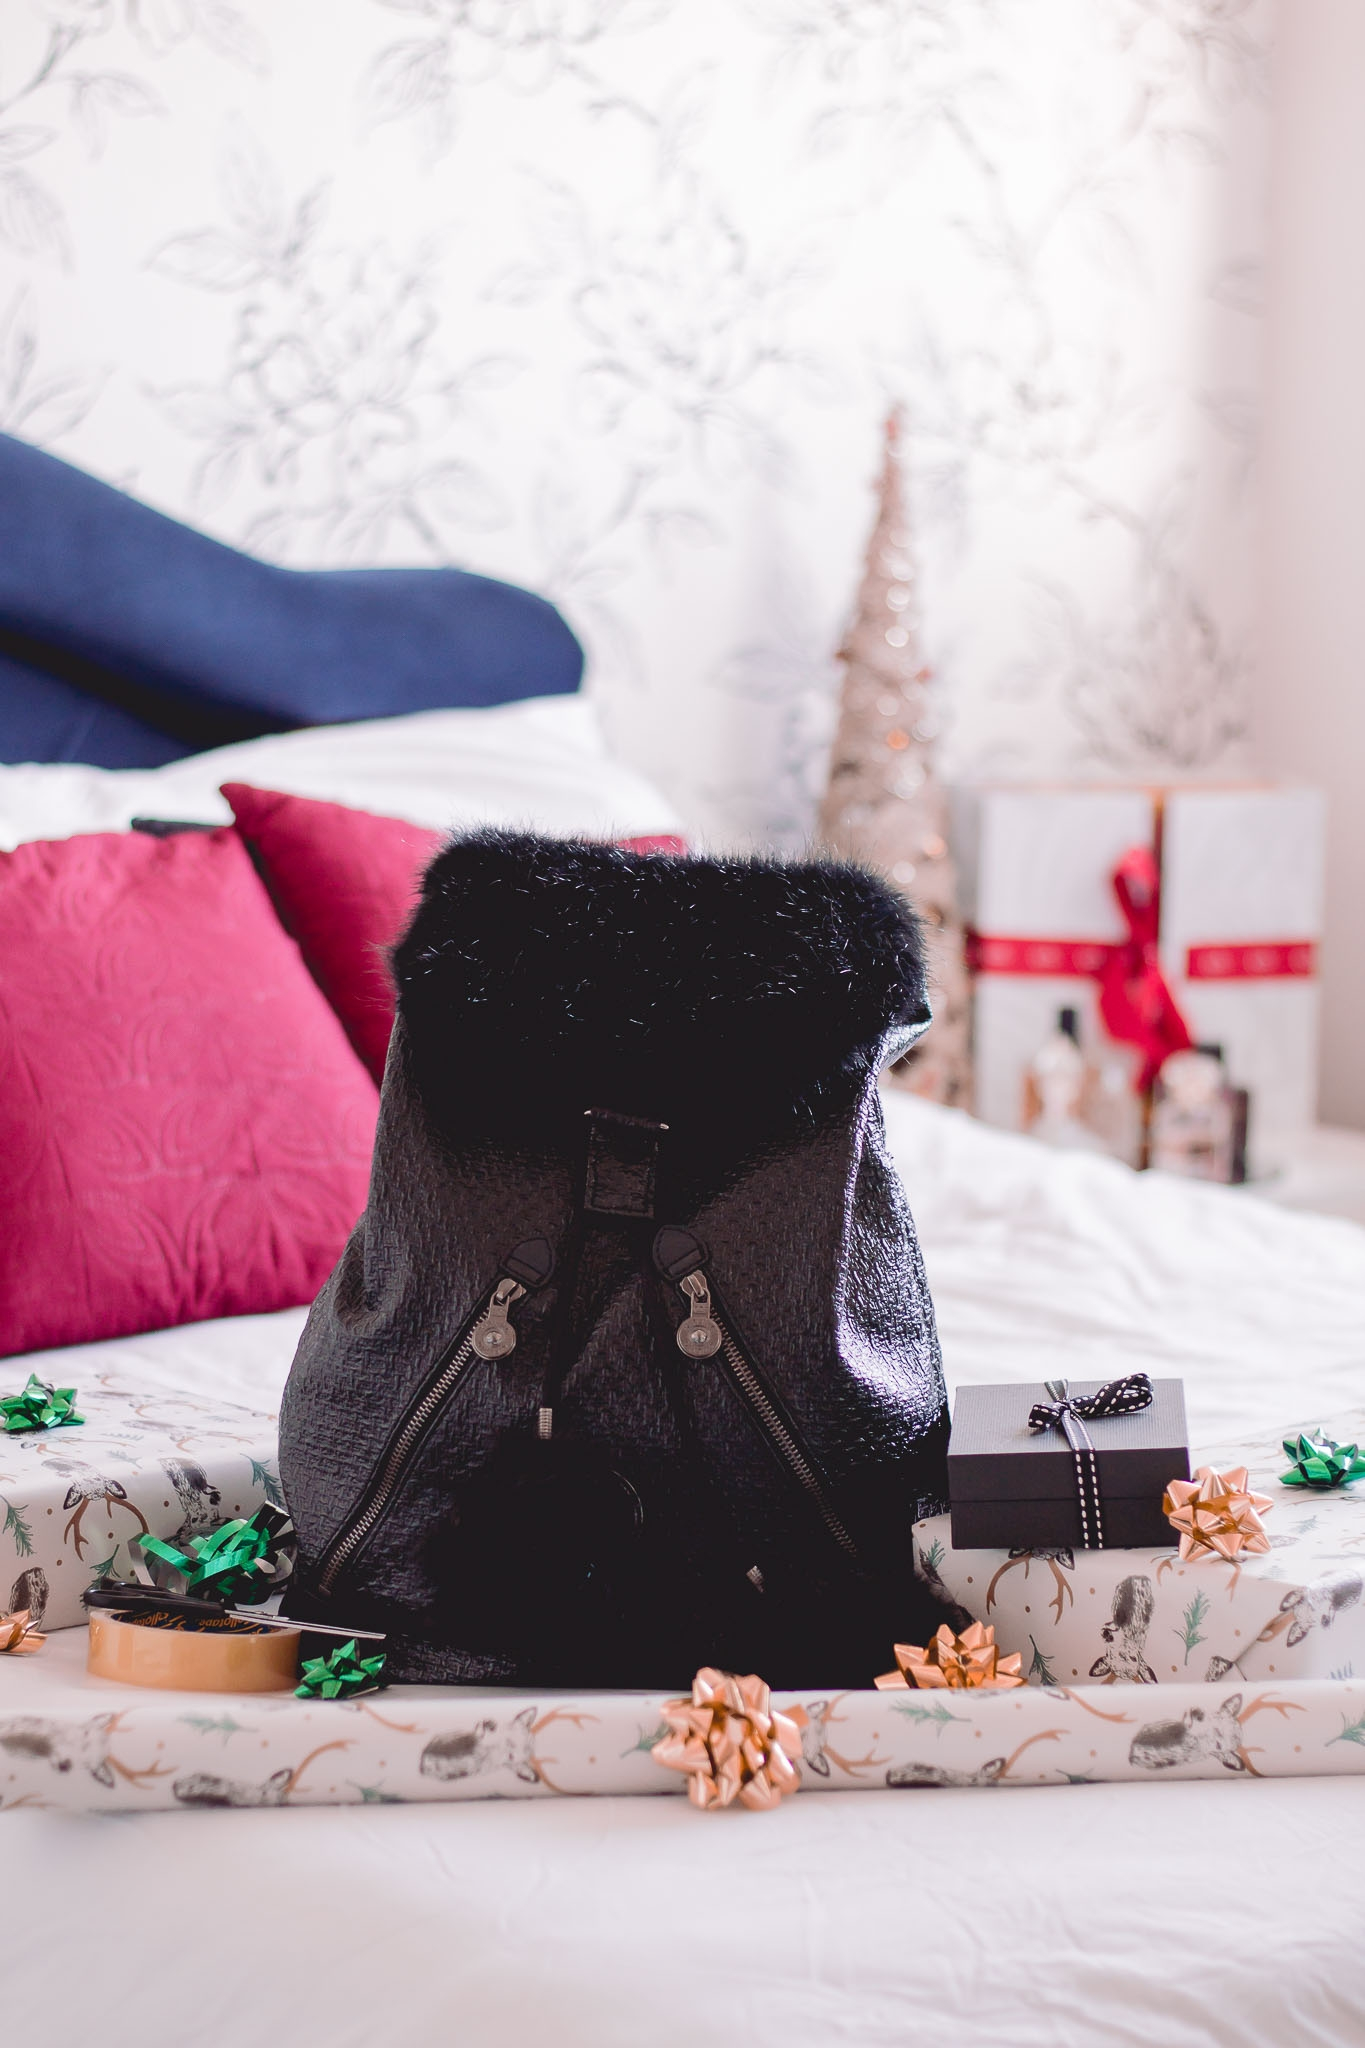 kipling bag on bed with gifts and gift wrapping